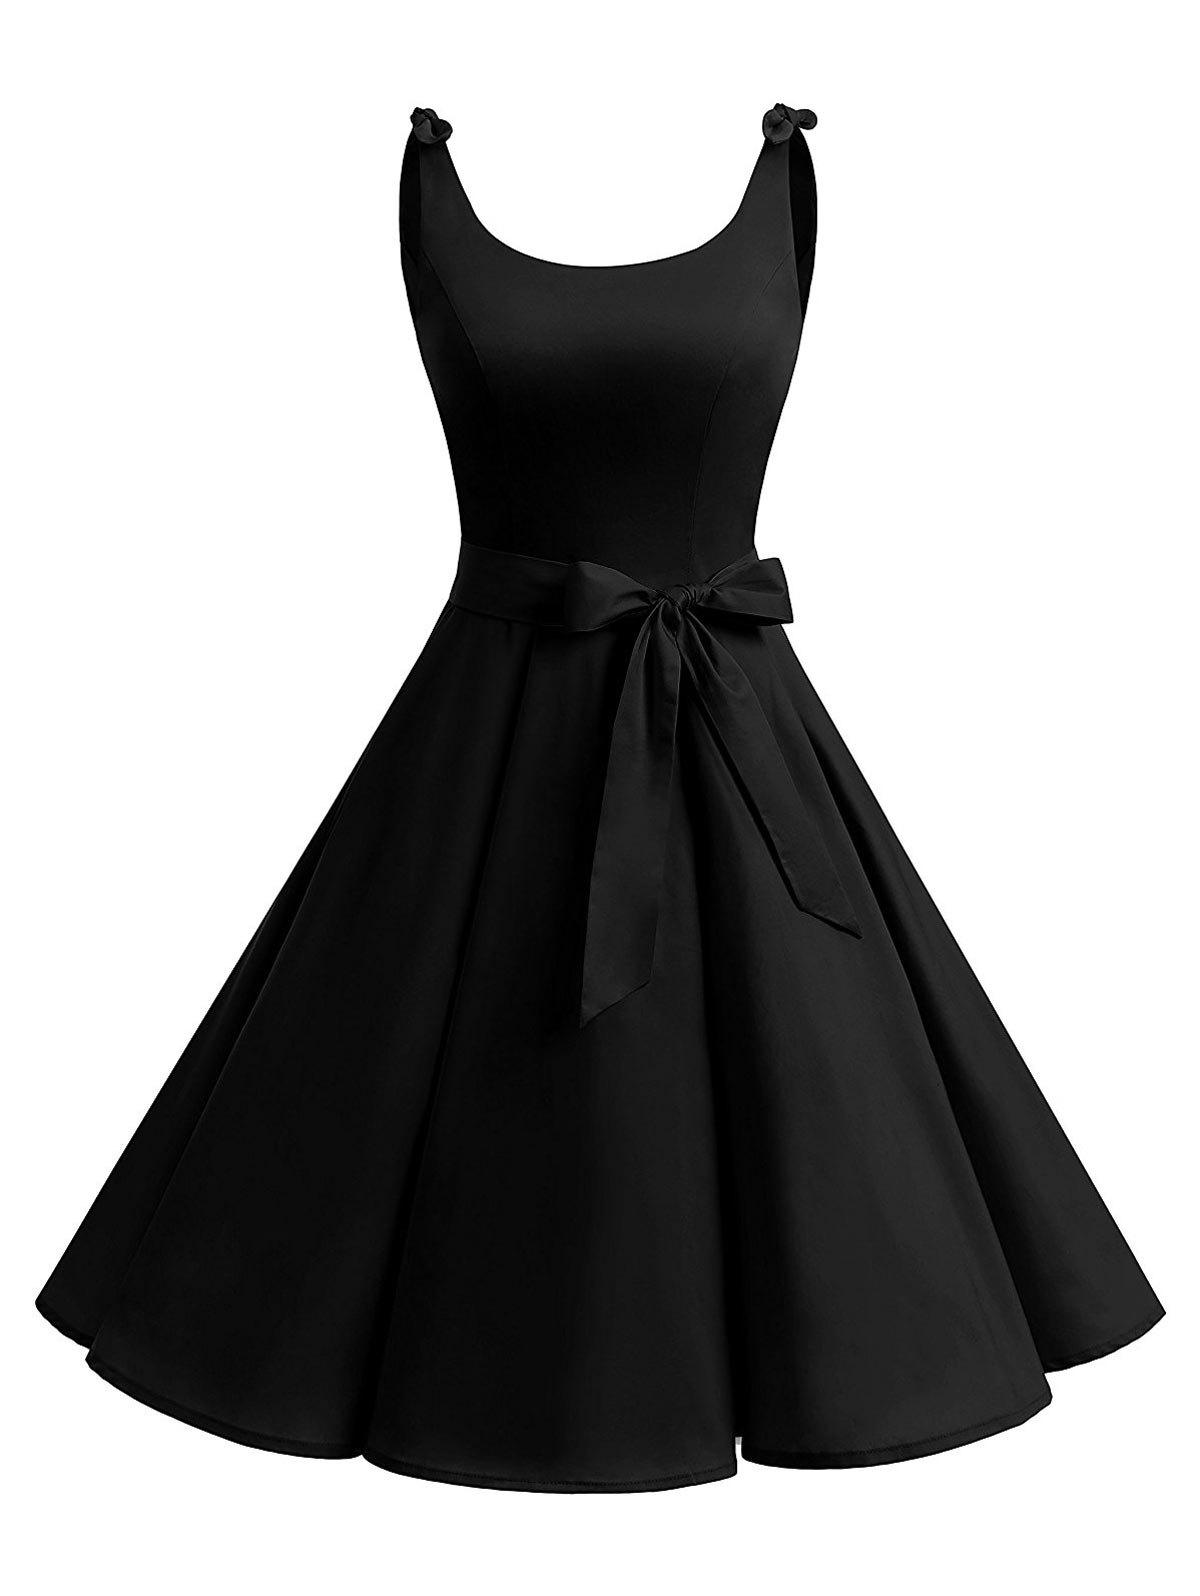 Best Vintage Bowknot Cut Out Skater Party Dress